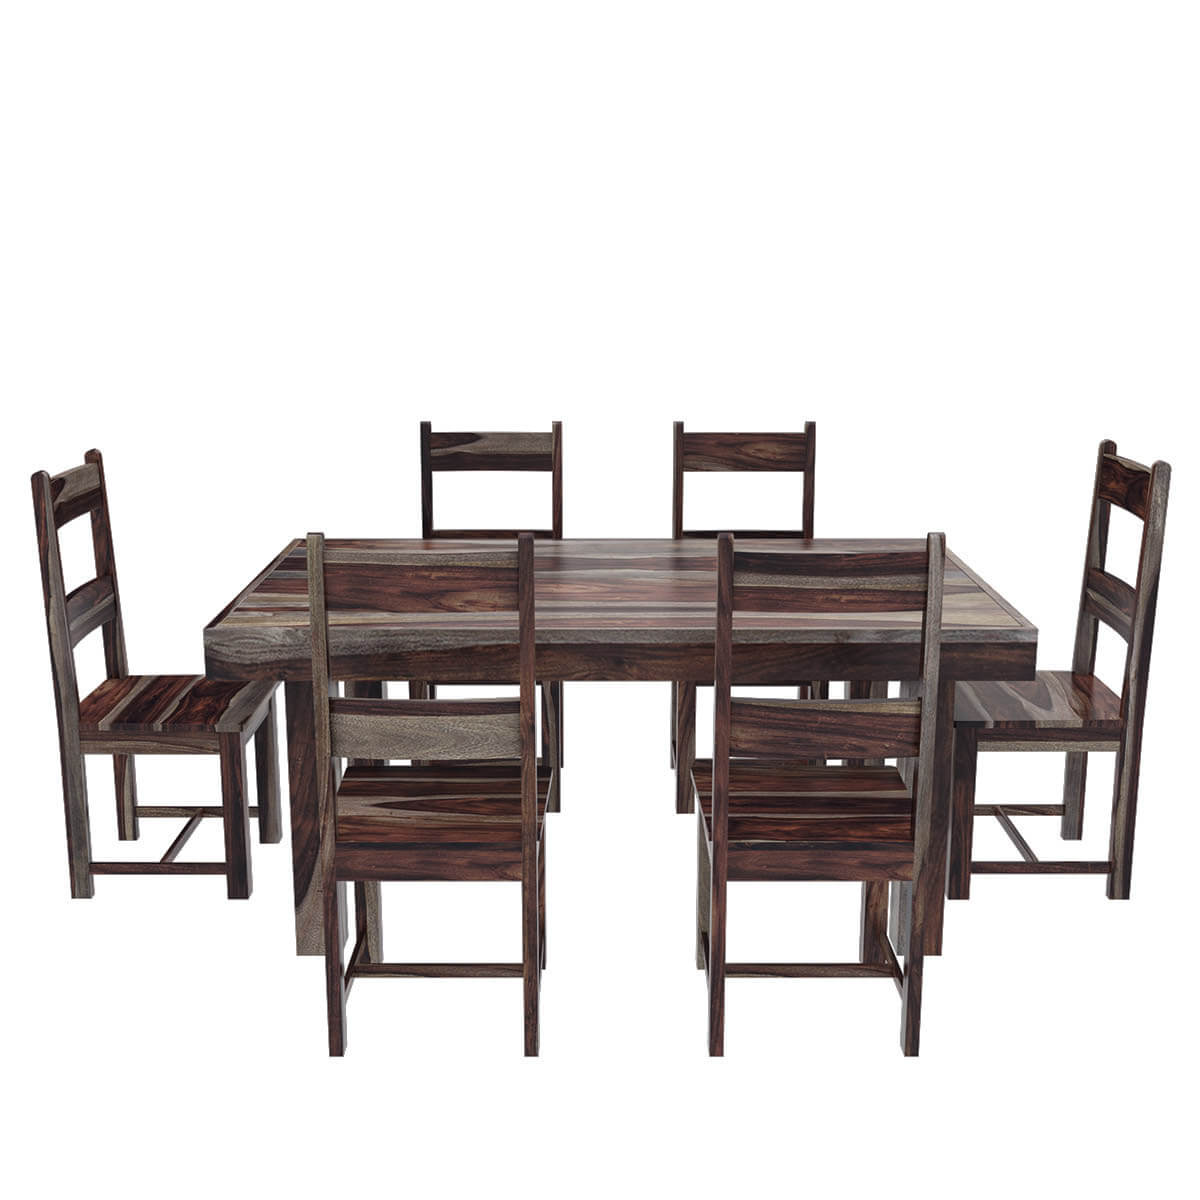 Rustic Dining Room Table Set: Frisco Modern Solid Wood Casual Rustic Dining Room Table